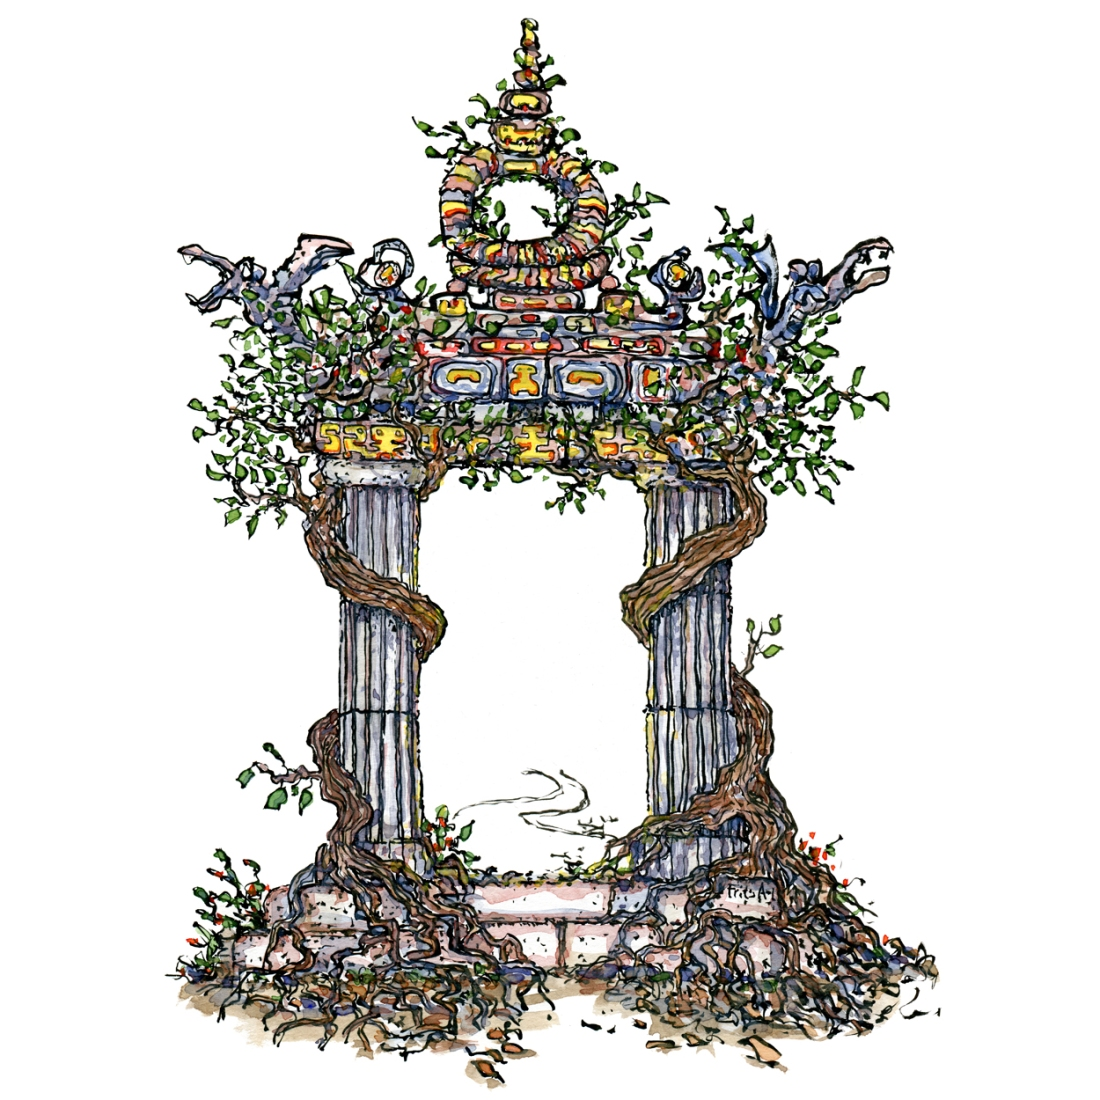 Drawing of an ancient magical gate